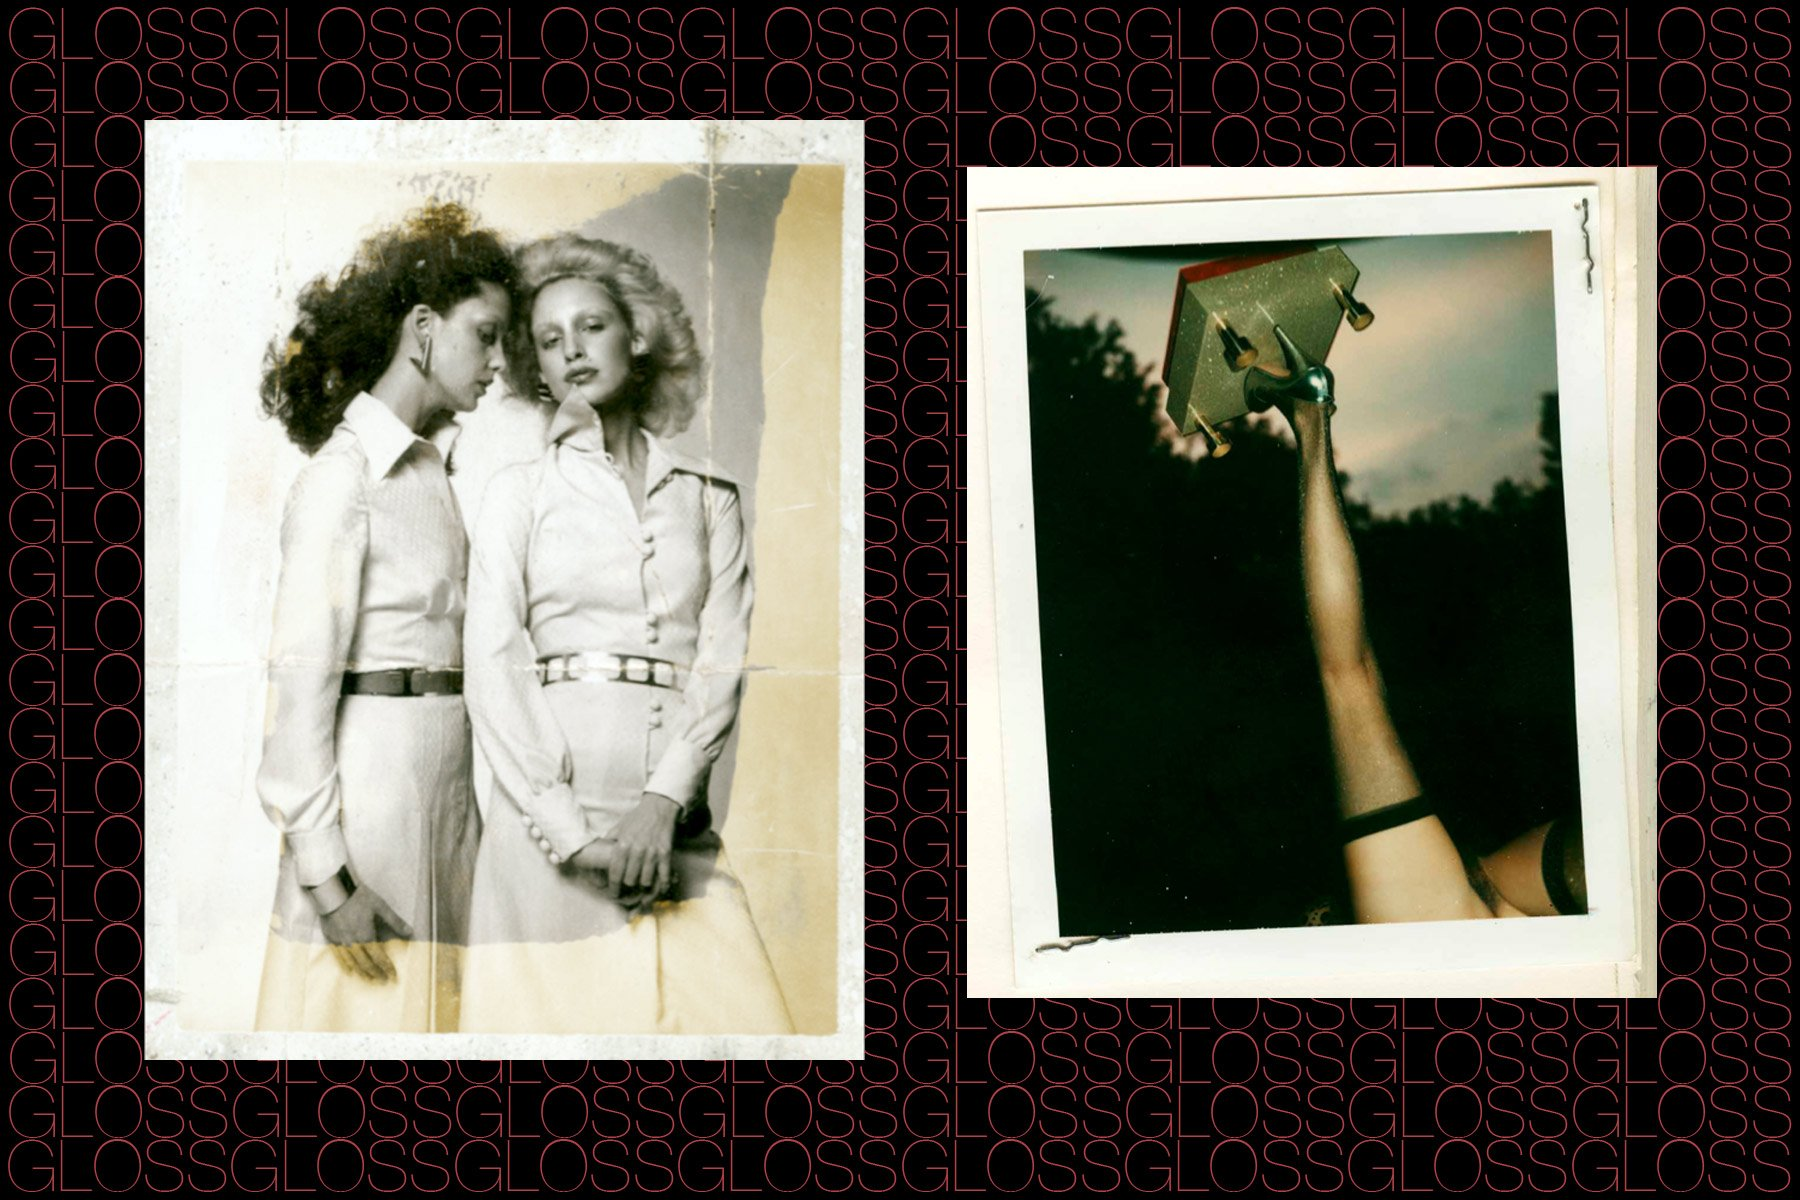 Polaroids from the collection of the Chris von Wangenheim estate, featured in the book GLOSS by Roger Padilha & Mauricio Padilha, Rizzoli 2015. Ponyboy magazine NY.